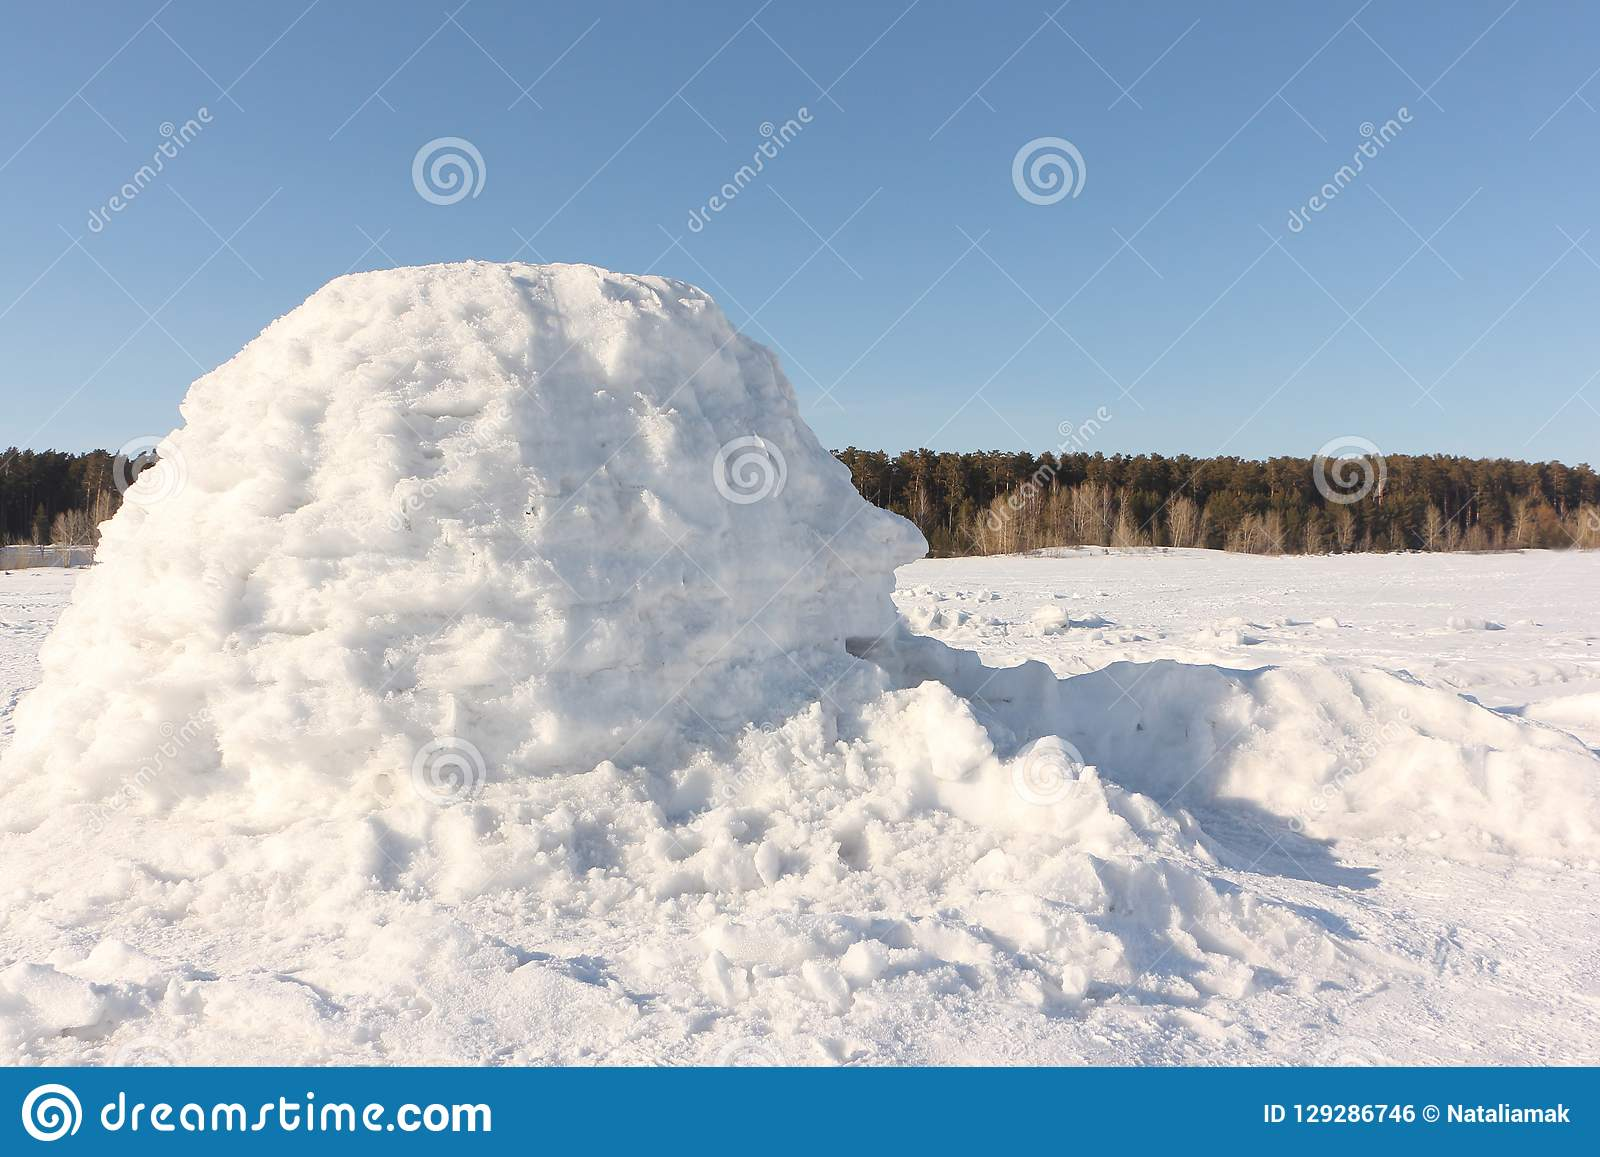 Igloo standing on a snowy glade